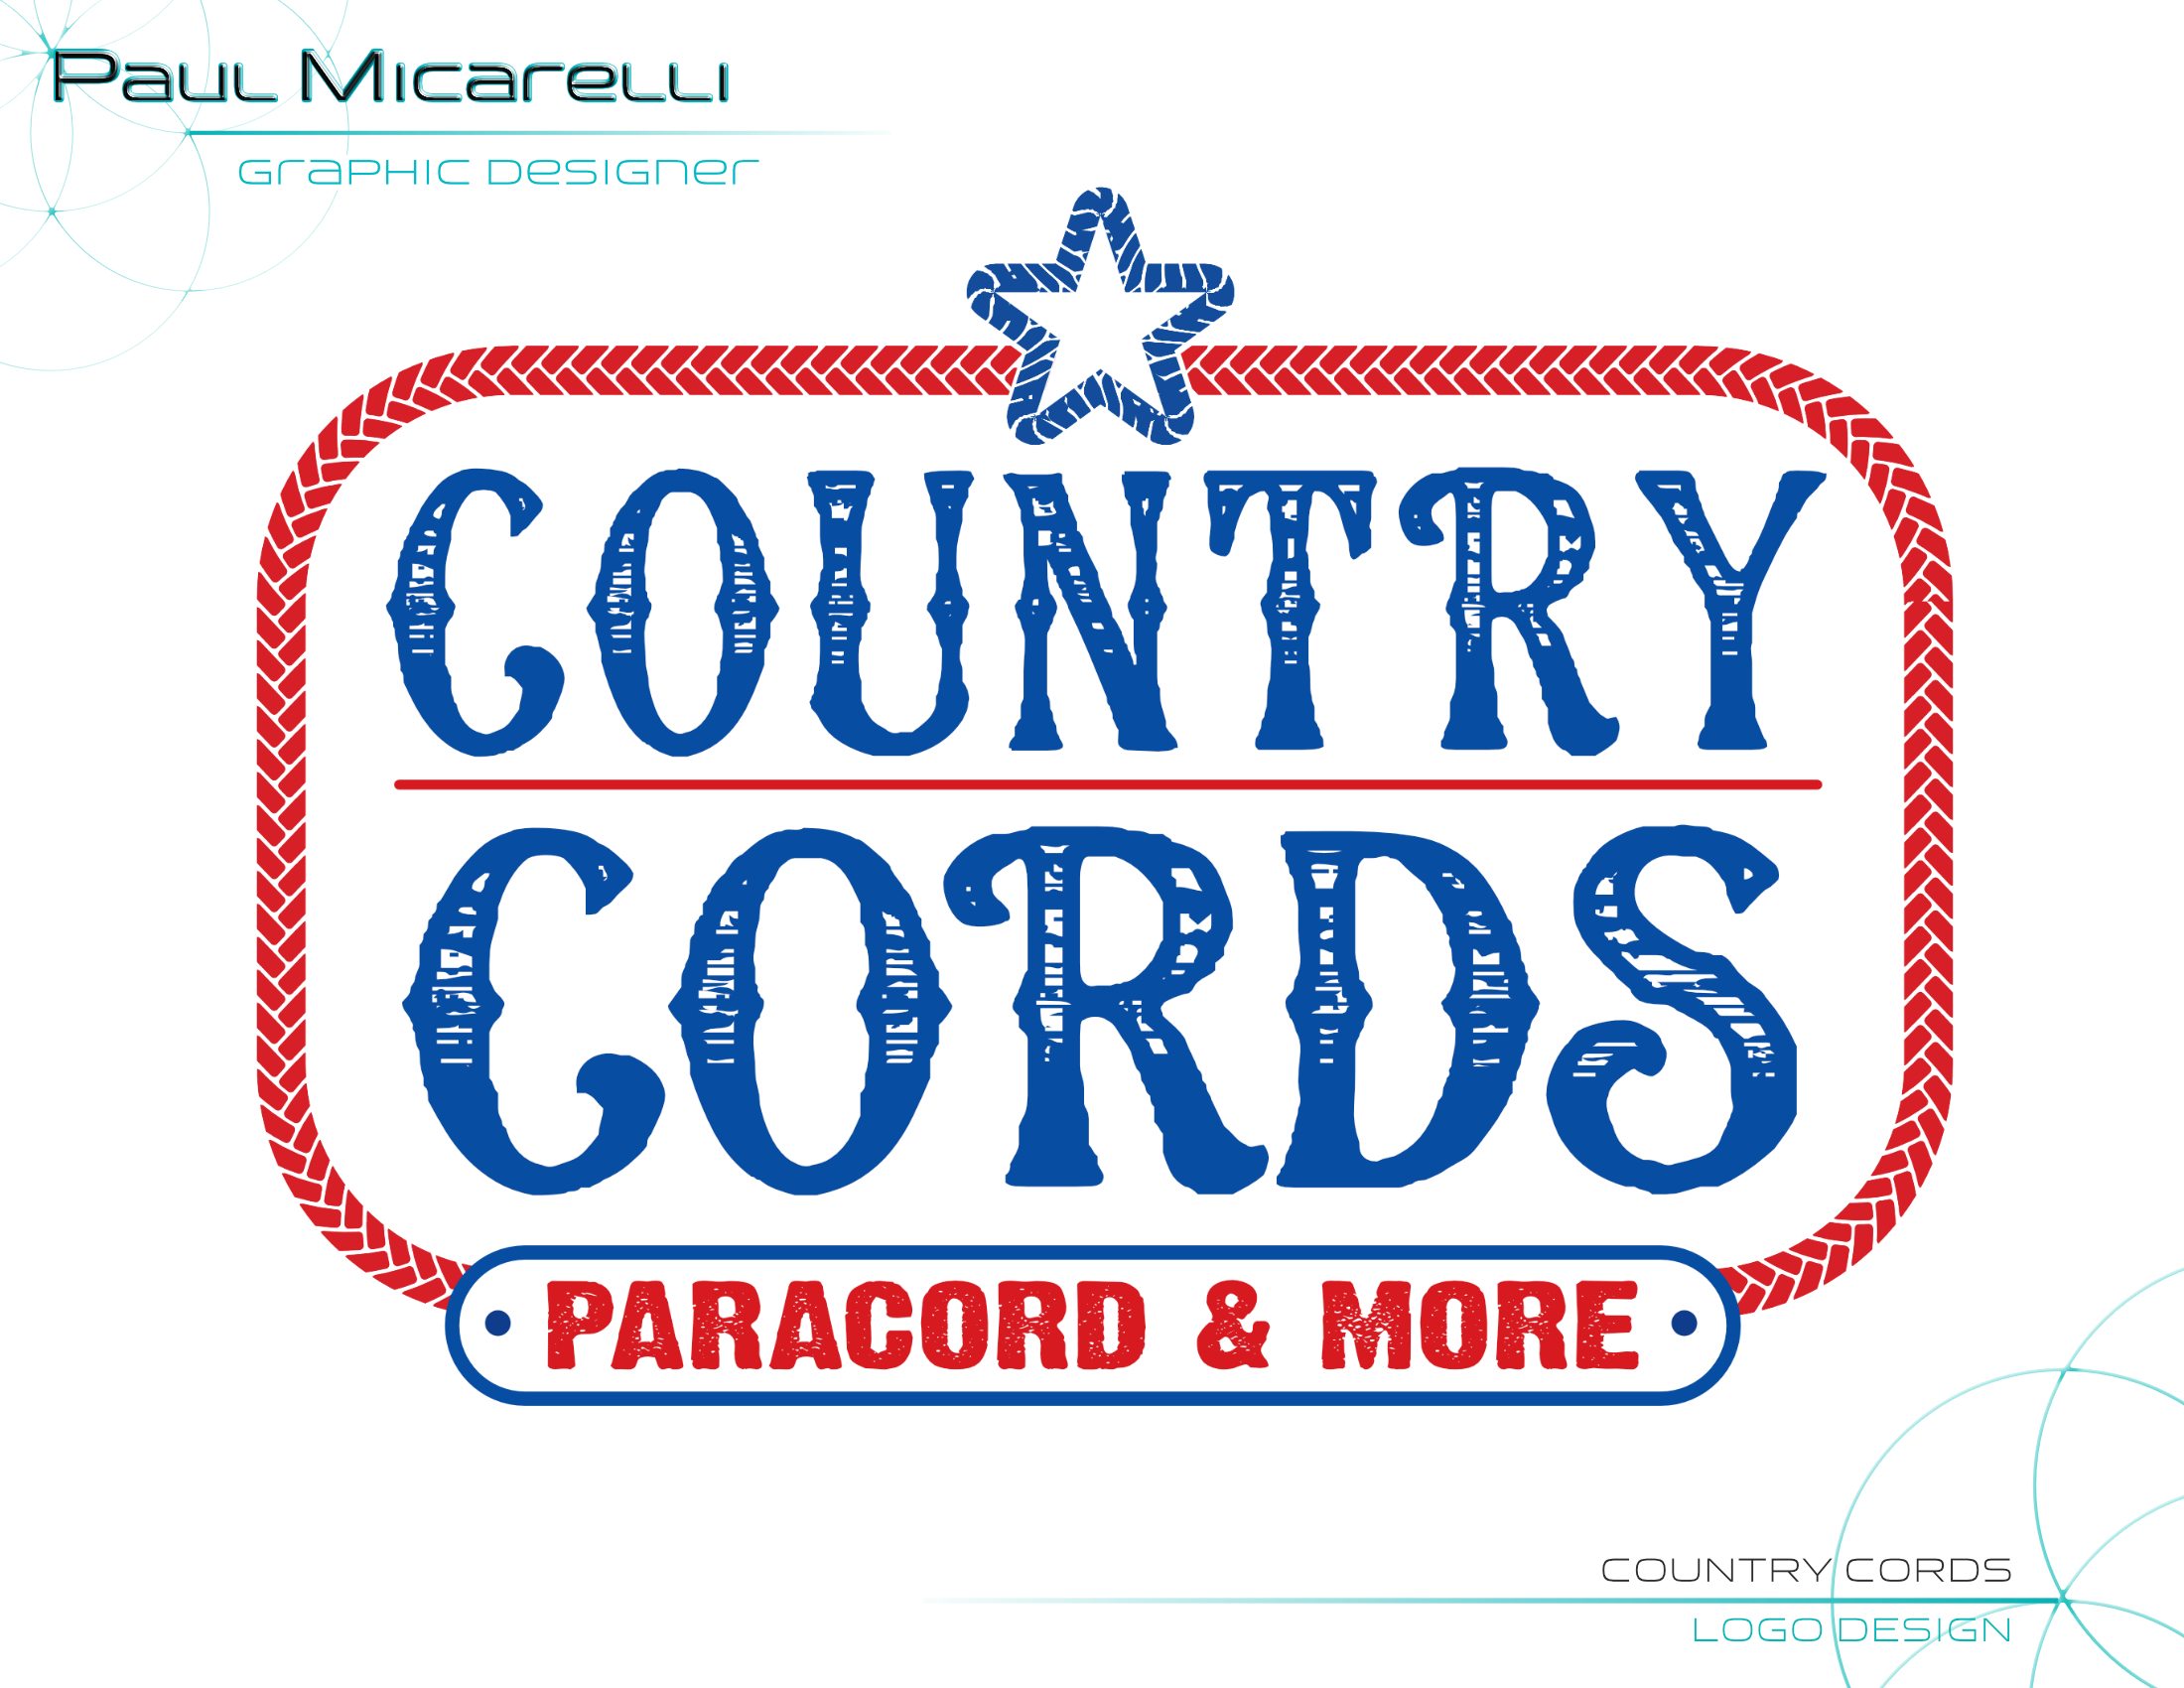 Paul-Micarelli-Country Cords Logo